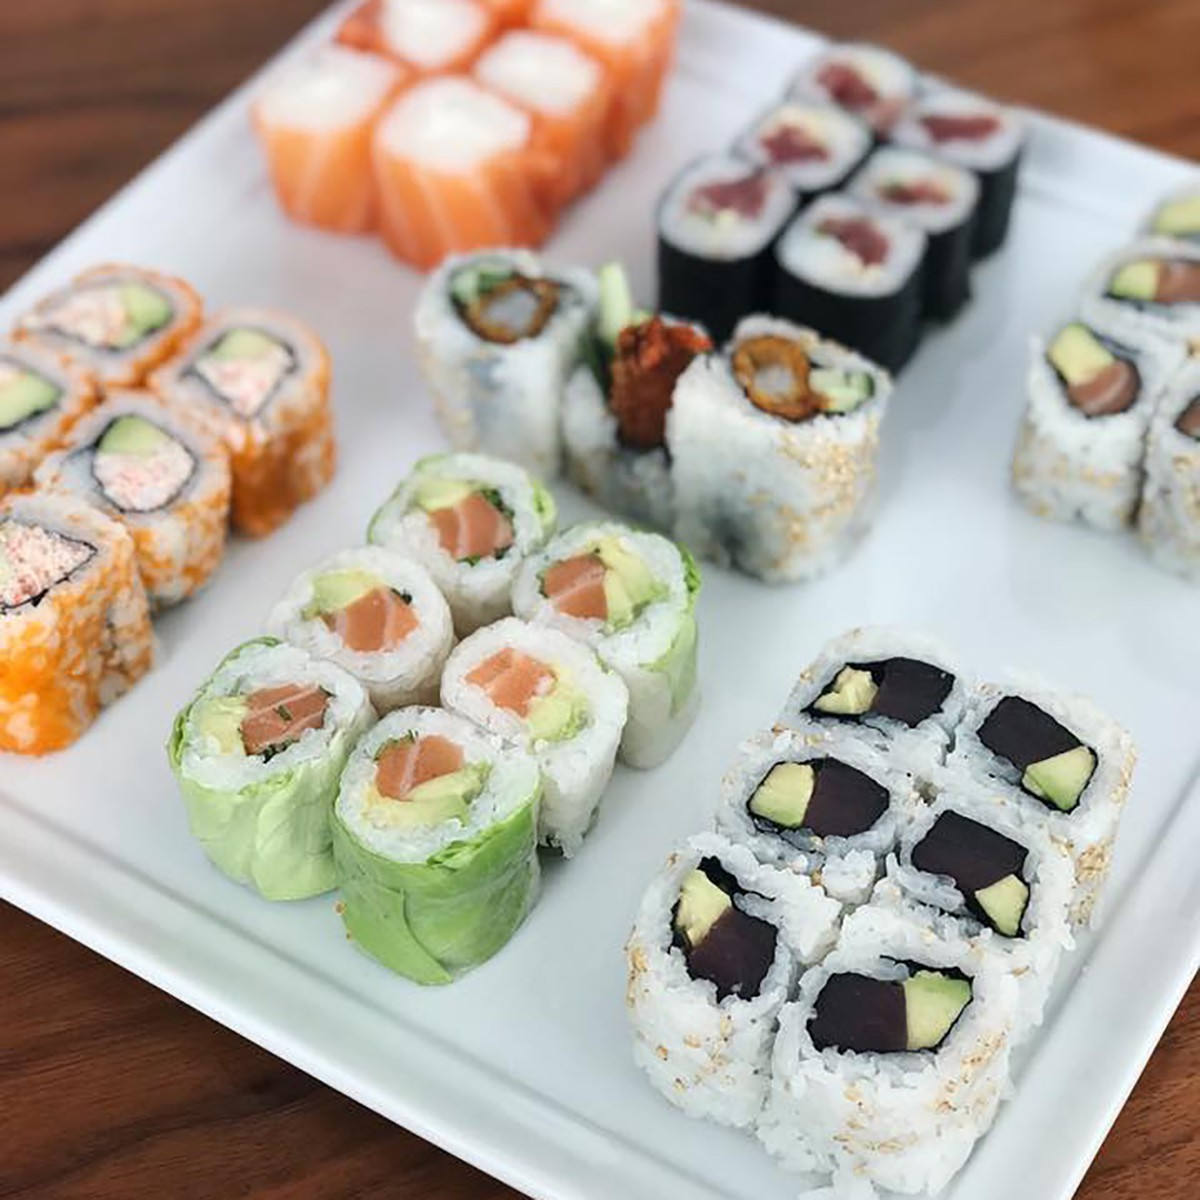 Sushi & Maki Sushi Oui available to rent / verhuur / location at 50.8 Studio • Belgïe, Belgique, Belgium, Catering, Huur, Location, Louer, Only in, Photo, Rent, Studio, Verhuur, Video